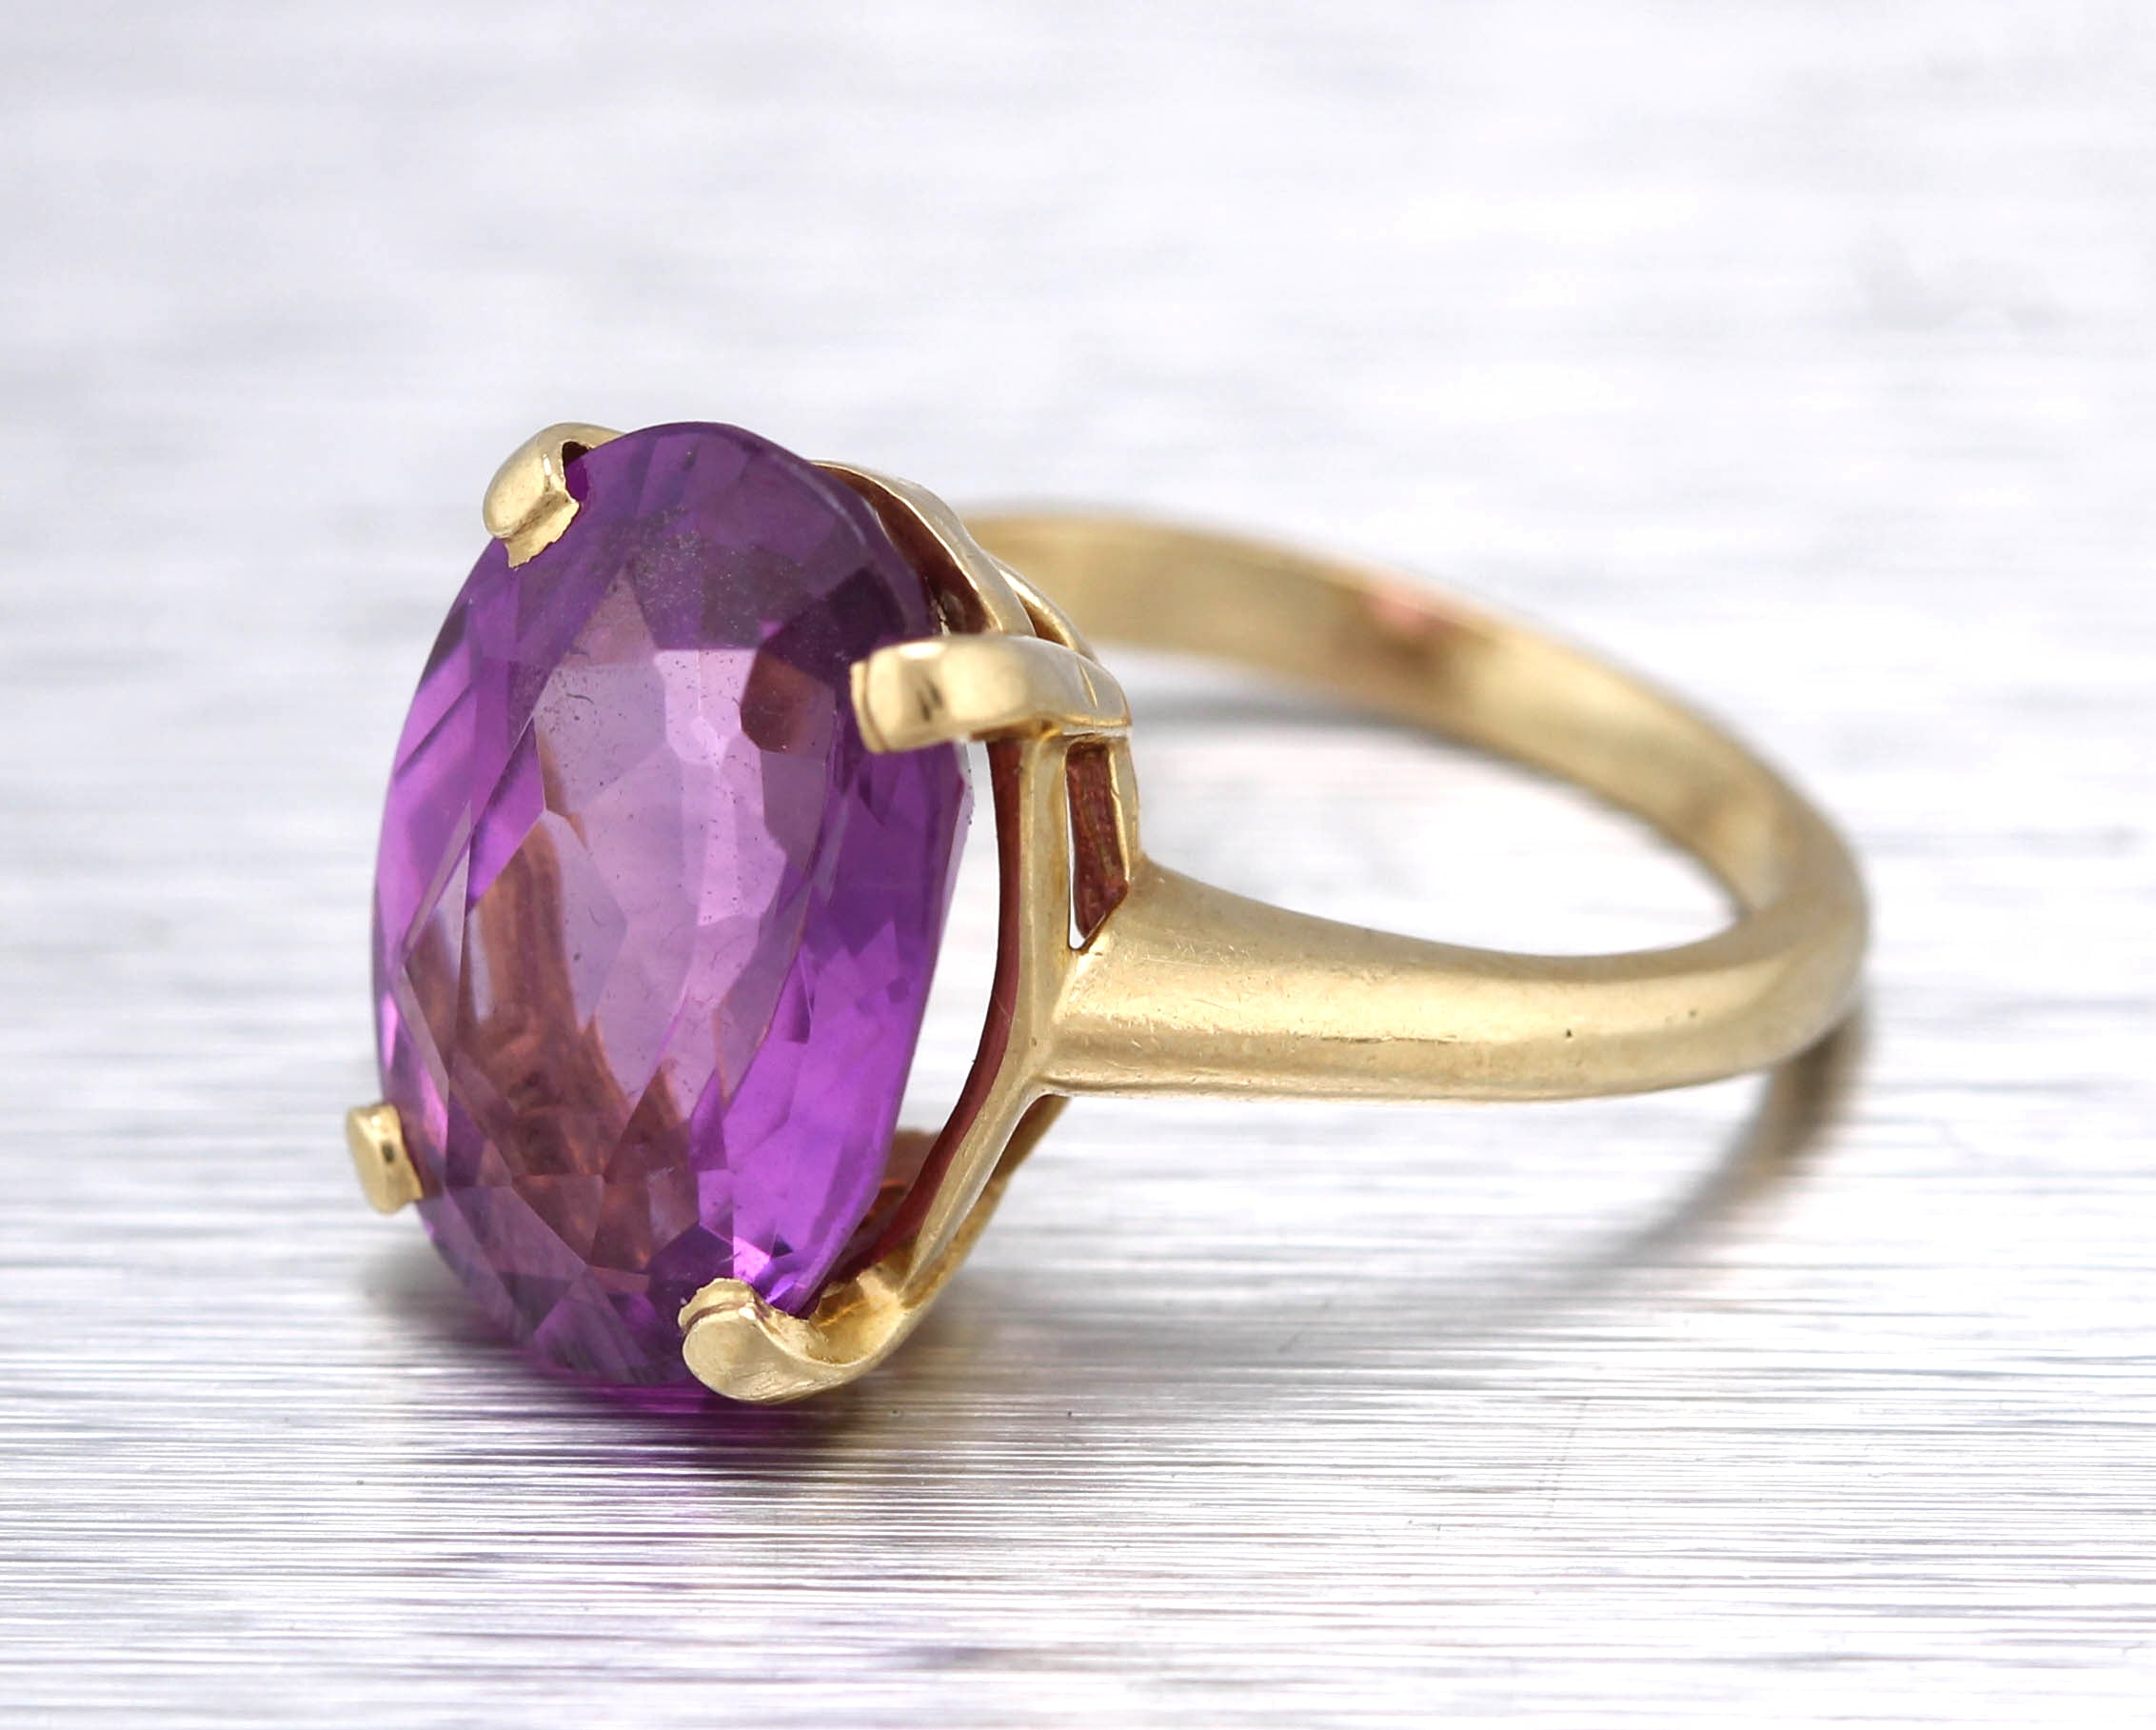 Lovely Ladies Estate 14K Yellow Gold 14x10mm Amethyst Gemstone Cocktail Ring